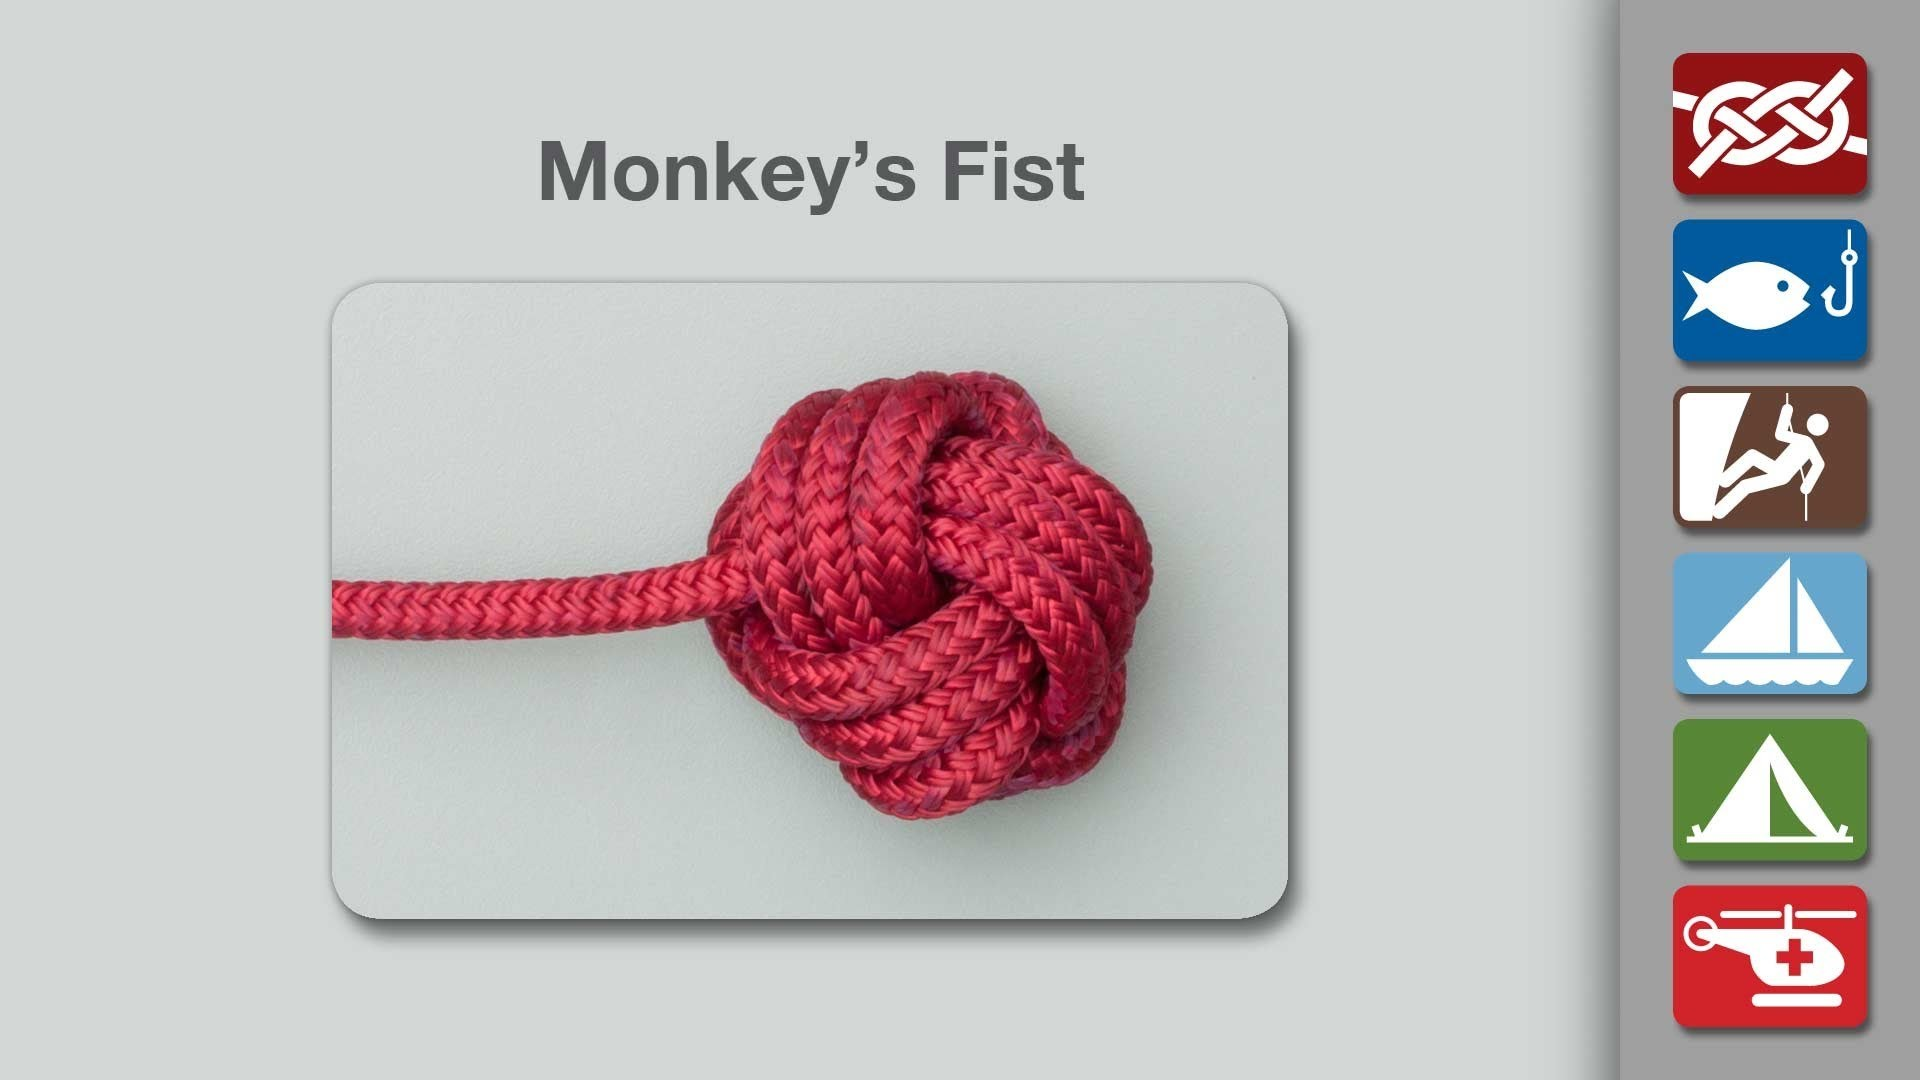 Monkey's Fist | How to Tie a Monkey's Fist